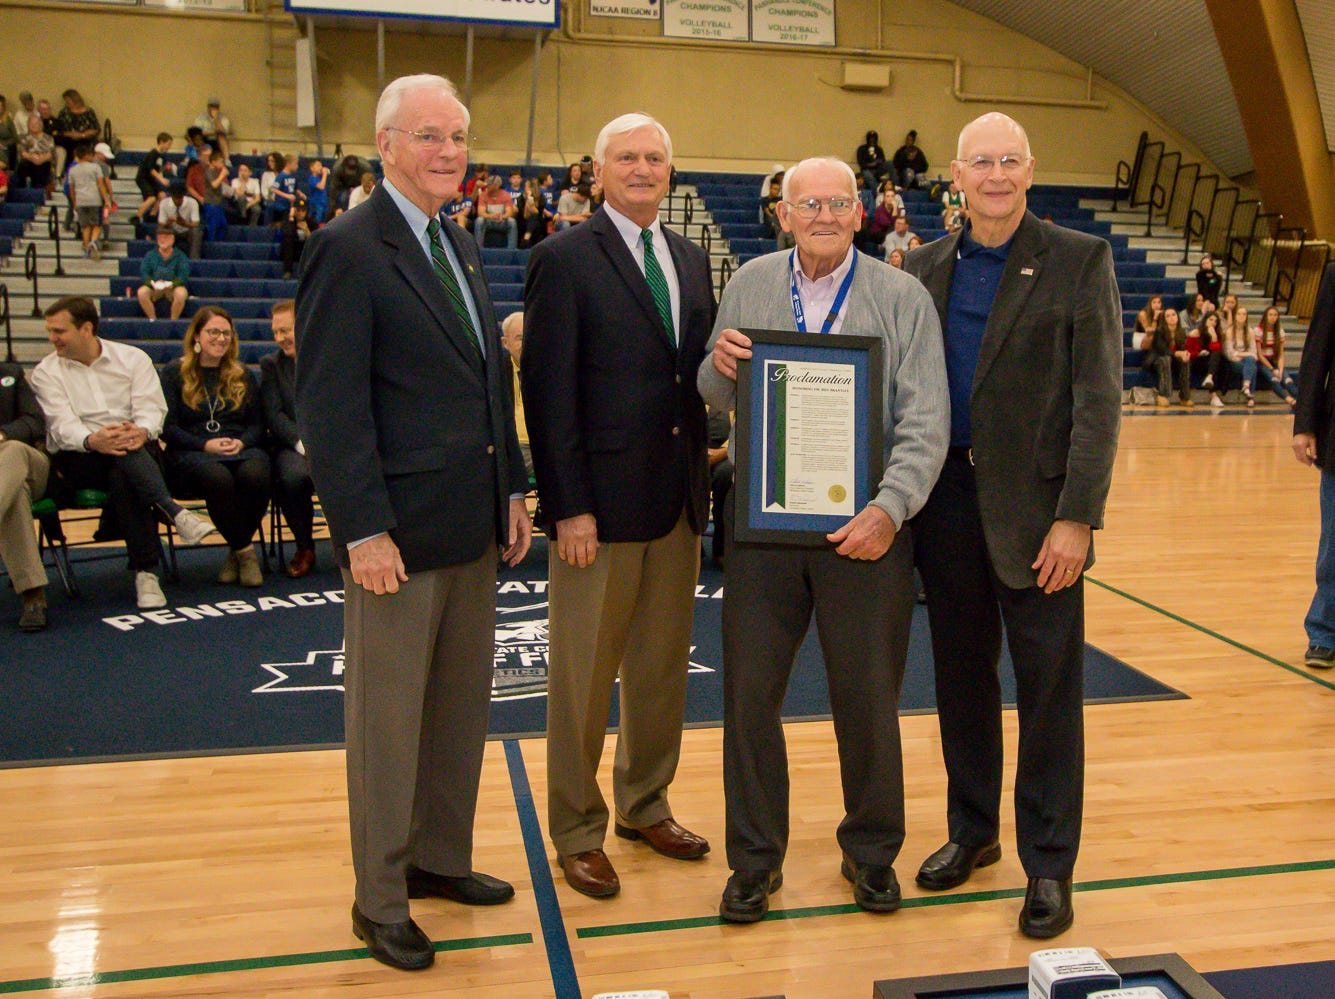 Dr. Bill Brantley, second from right, is honored during Pensacola State College's inaugural Athletics Hall of Fame induction ceremony on Saturday, February 16, 2019, in the Hartsell Arena on the main campus. A former basketball player, Brantley taught at the college for over 30 years, and continues to donate to the PSC Foundation and the athletics department.